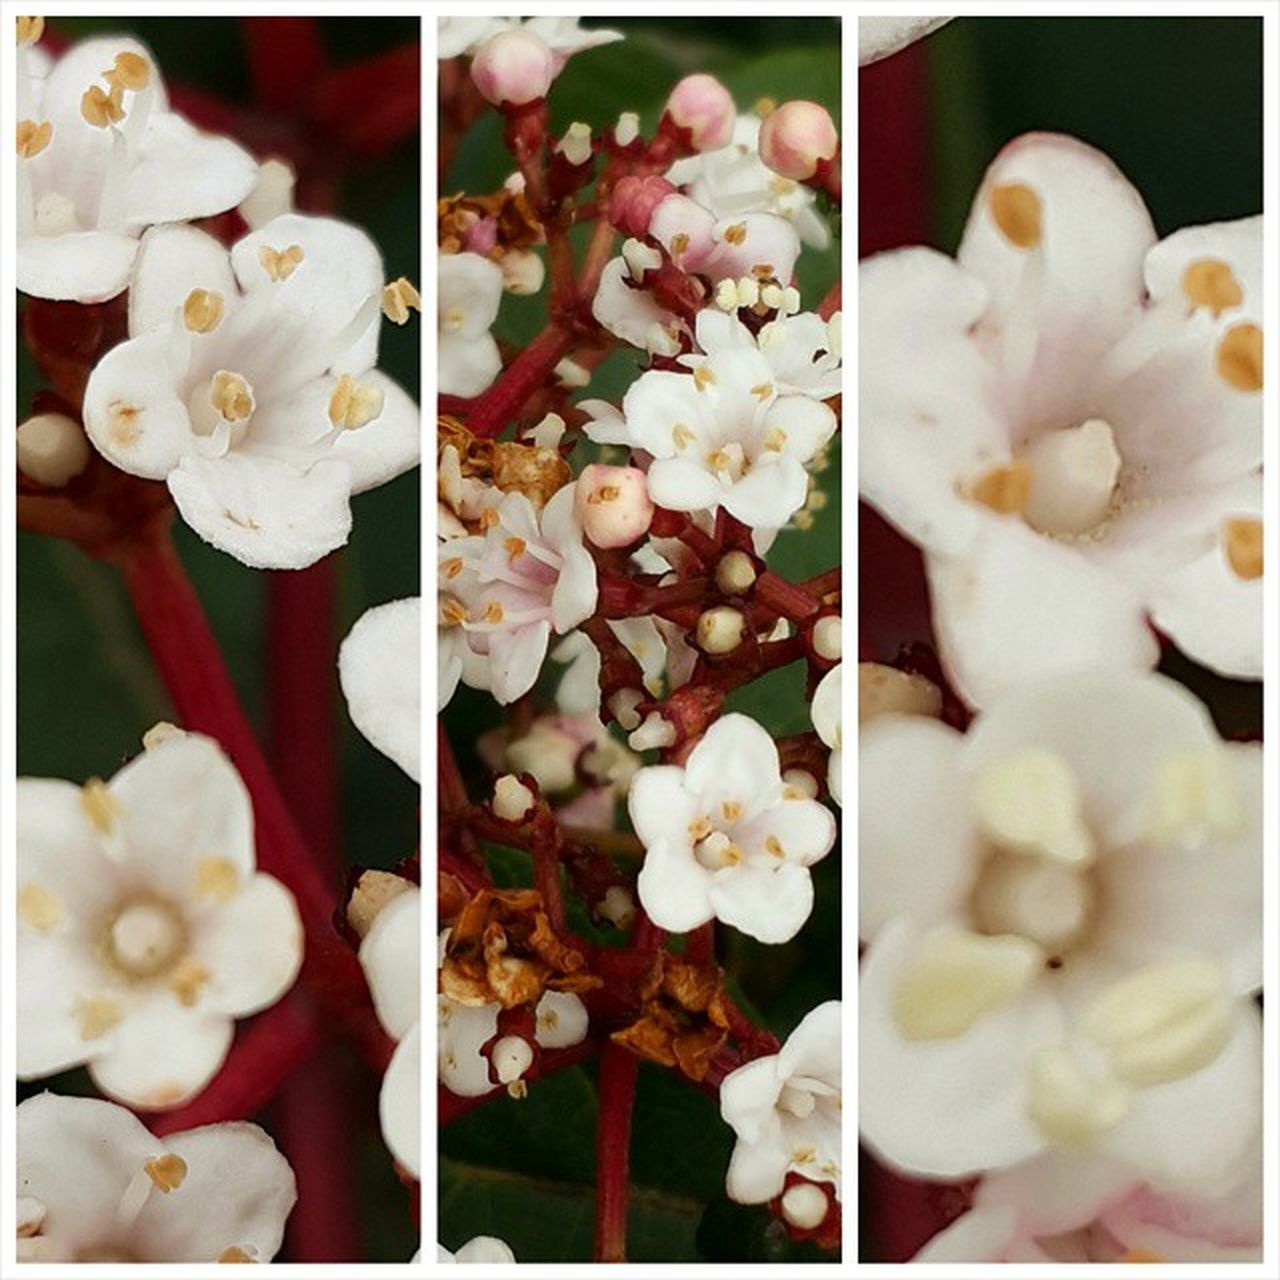 flower, freshness, no people, food, food and drink, collage, variation, close-up, indoors, fragility, flower head, sweet food, nature, beauty in nature, day, ready-to-eat